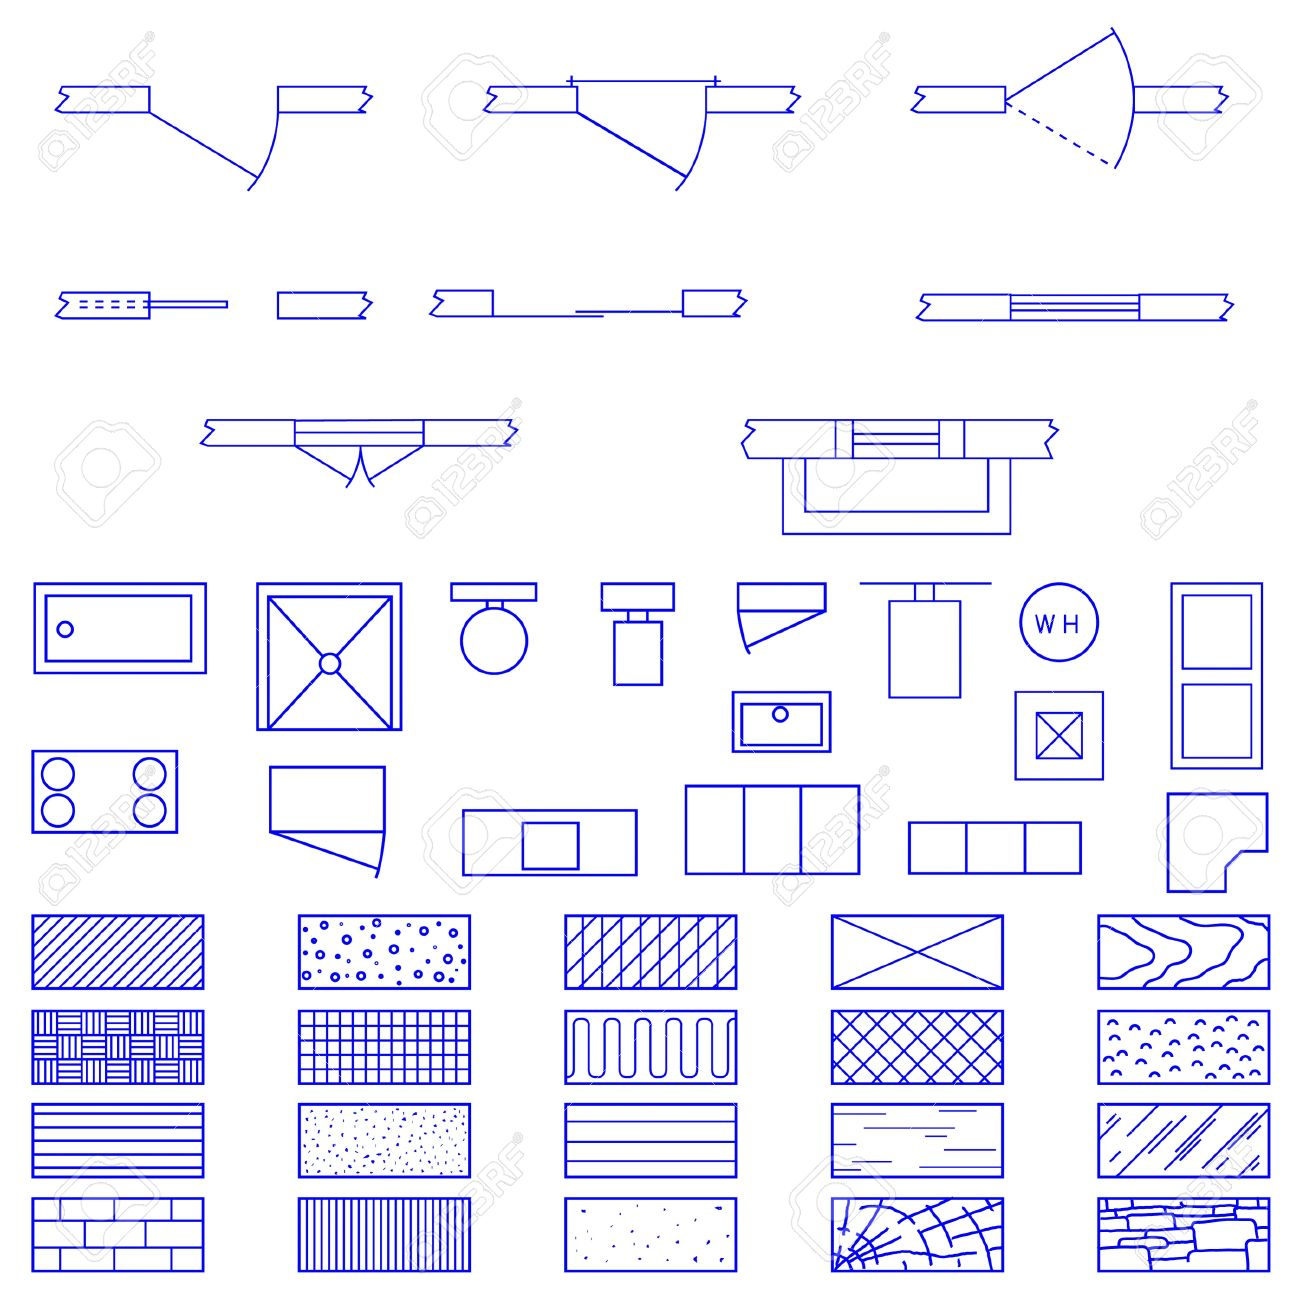 Complete set of blueprint icons and symbols used by architects complete set of blueprint icons and symbols used by architects and designers in the production of malvernweather Images